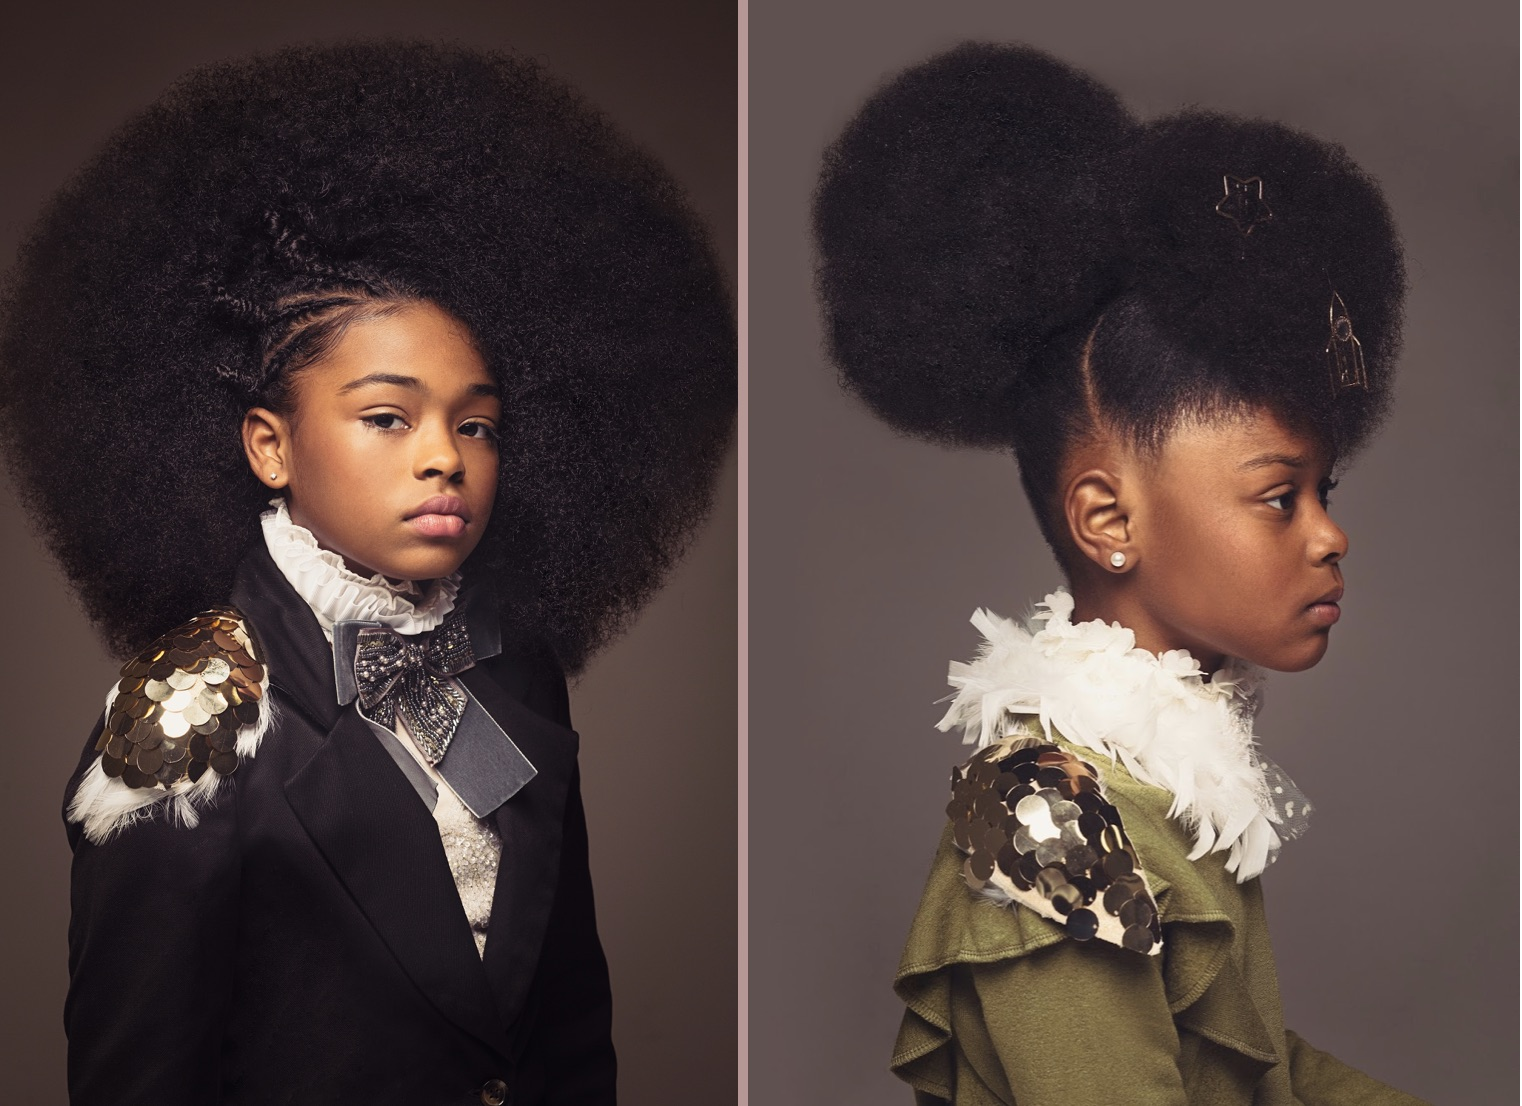 Styles For Afro Hair: AfroArt Photo Series Celebrates The Beauty Of Natural Afro